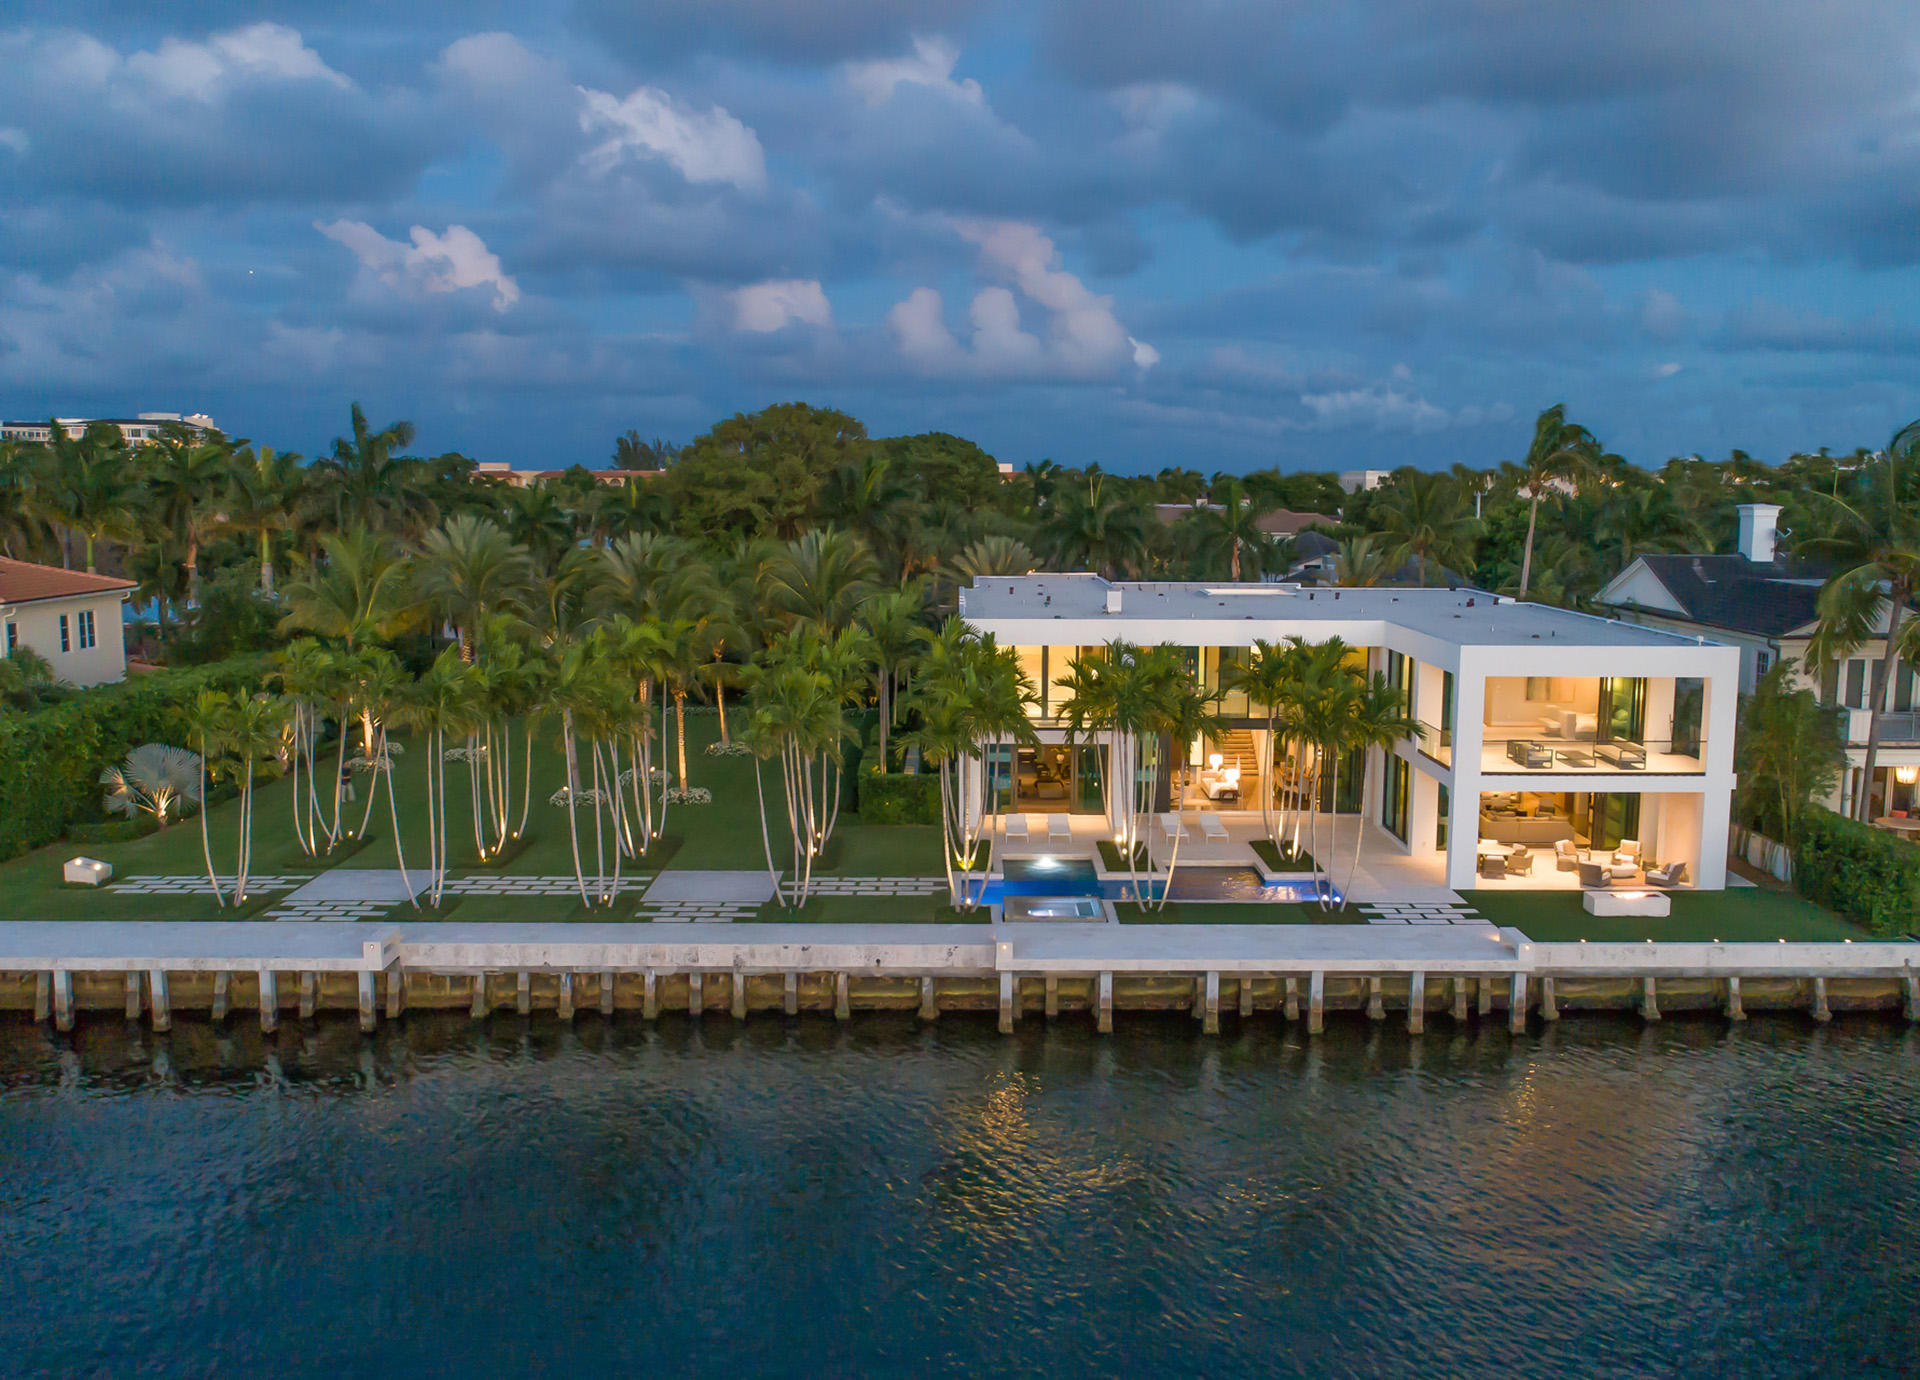 """Museum Modern Intracoastal Estate sited on two prized waterfront lots (200+/- ft) in Old Boca Raton's ''Estate Section'' originally built  (2015) by high-end builder J.H. Norman, innovative architect George Brewer and award winning Marc-Michael's Interior Design.High impact Architectural design encased in glass, stone and organic/earthy wood detailing.Resort-style pool/patio with lush landscape park-like grounds for large gatherings.Shown to pre-qualified buyers only. DISCLAIMER: The written and verbal information provided including but not limited to prices, measurements, square footages, lot sizes, calculations and statistics have been obtained and conveyed from third parties such as the applicable Multiple Listing Service, public records as well as other sources. All information including that produced by the Sellers or Listing Company are subject to errors, omissions or changes without notice and should be independently verified by any prospect for the purchase of a Property.  The Sellers and Listing Company expressly disclaim any warranty or representation regarding all information.  Prospective purchasers' use of this or any written and verbal information is acknowledgement of this disclaimer and that Prospects shall perform their own due diligence.  Prospective purchasers shall not rely on any written or verbal information provided when entering a contract for sale and purchase.  Some affiliations may not be applicable to certain geographic areas. If your property is currently listed, please do not consider this a solicitation. In the event a Buyer defaults, no commission will be paid to either Broker on the Deposits retained by the Seller.  """"No Commissions Paid until Title Passes.""""  Copyright 2019 Listing Company. All Rights Reserved."""